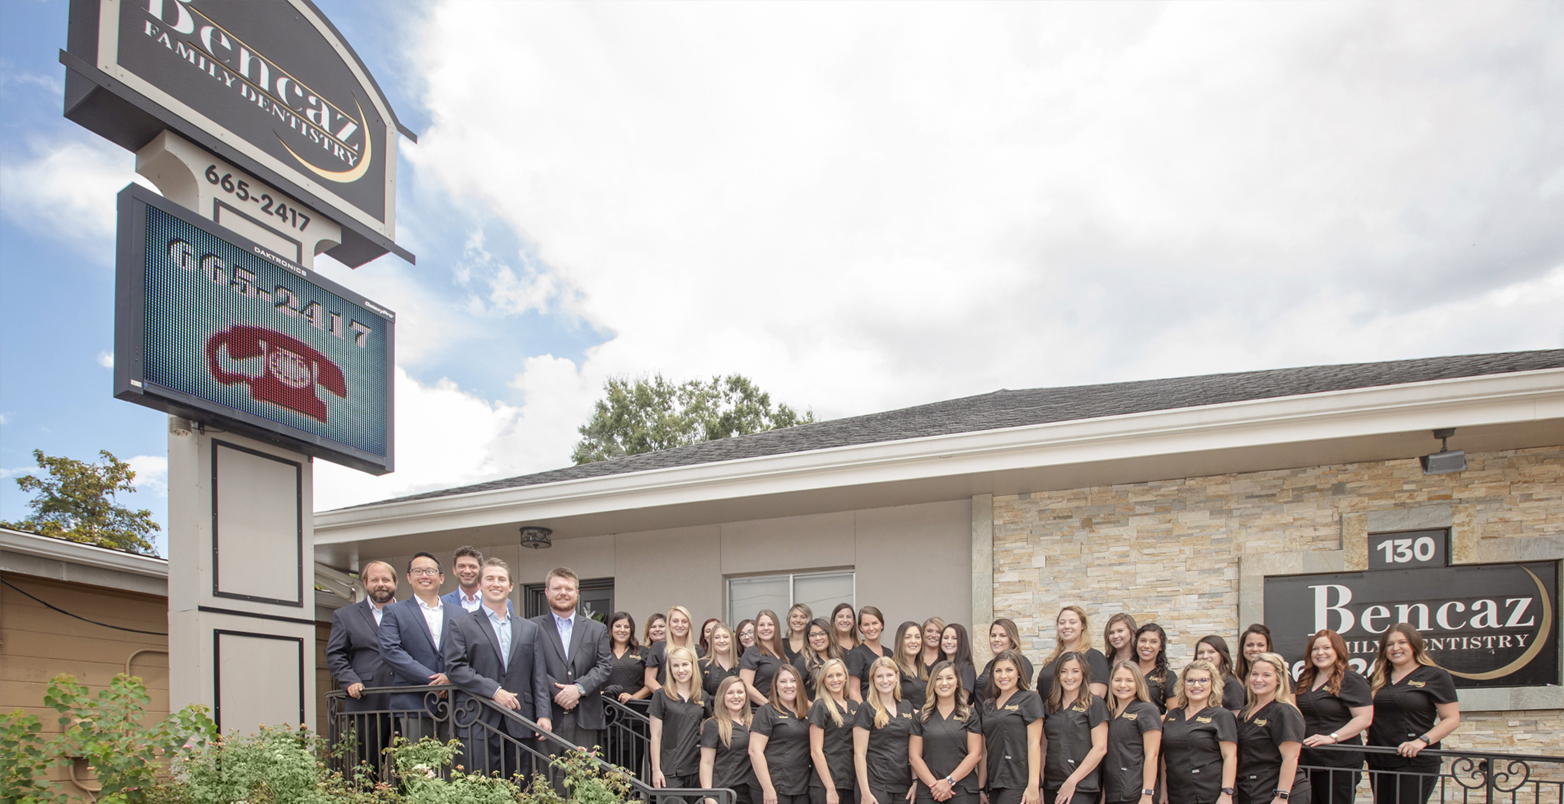 About Bencaz Family Dentistry at Bencaz Family Dentistry Denham Springs, LA